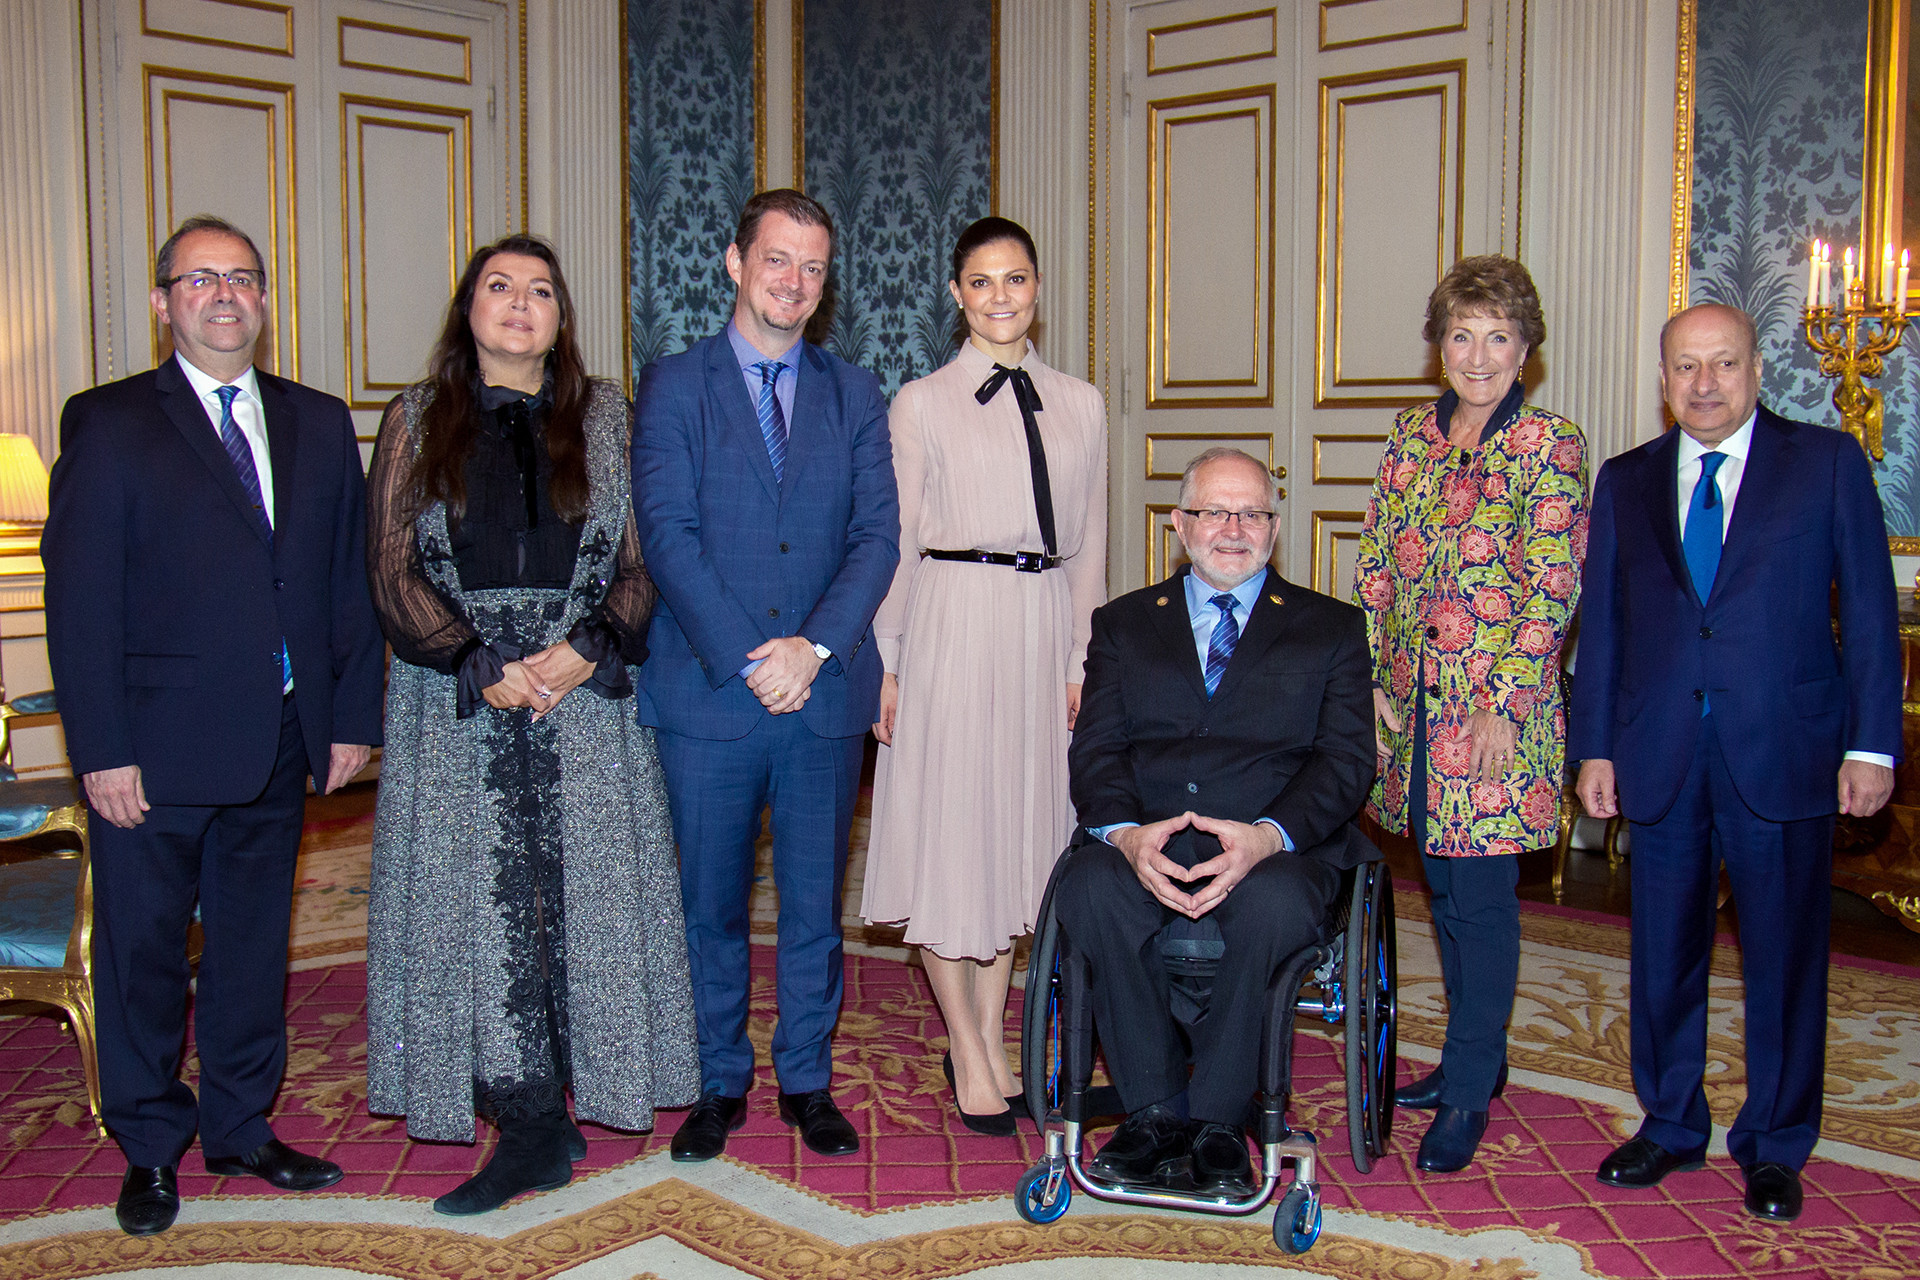 IPC Honorary Board meeting welcomed by royal host in Sweden